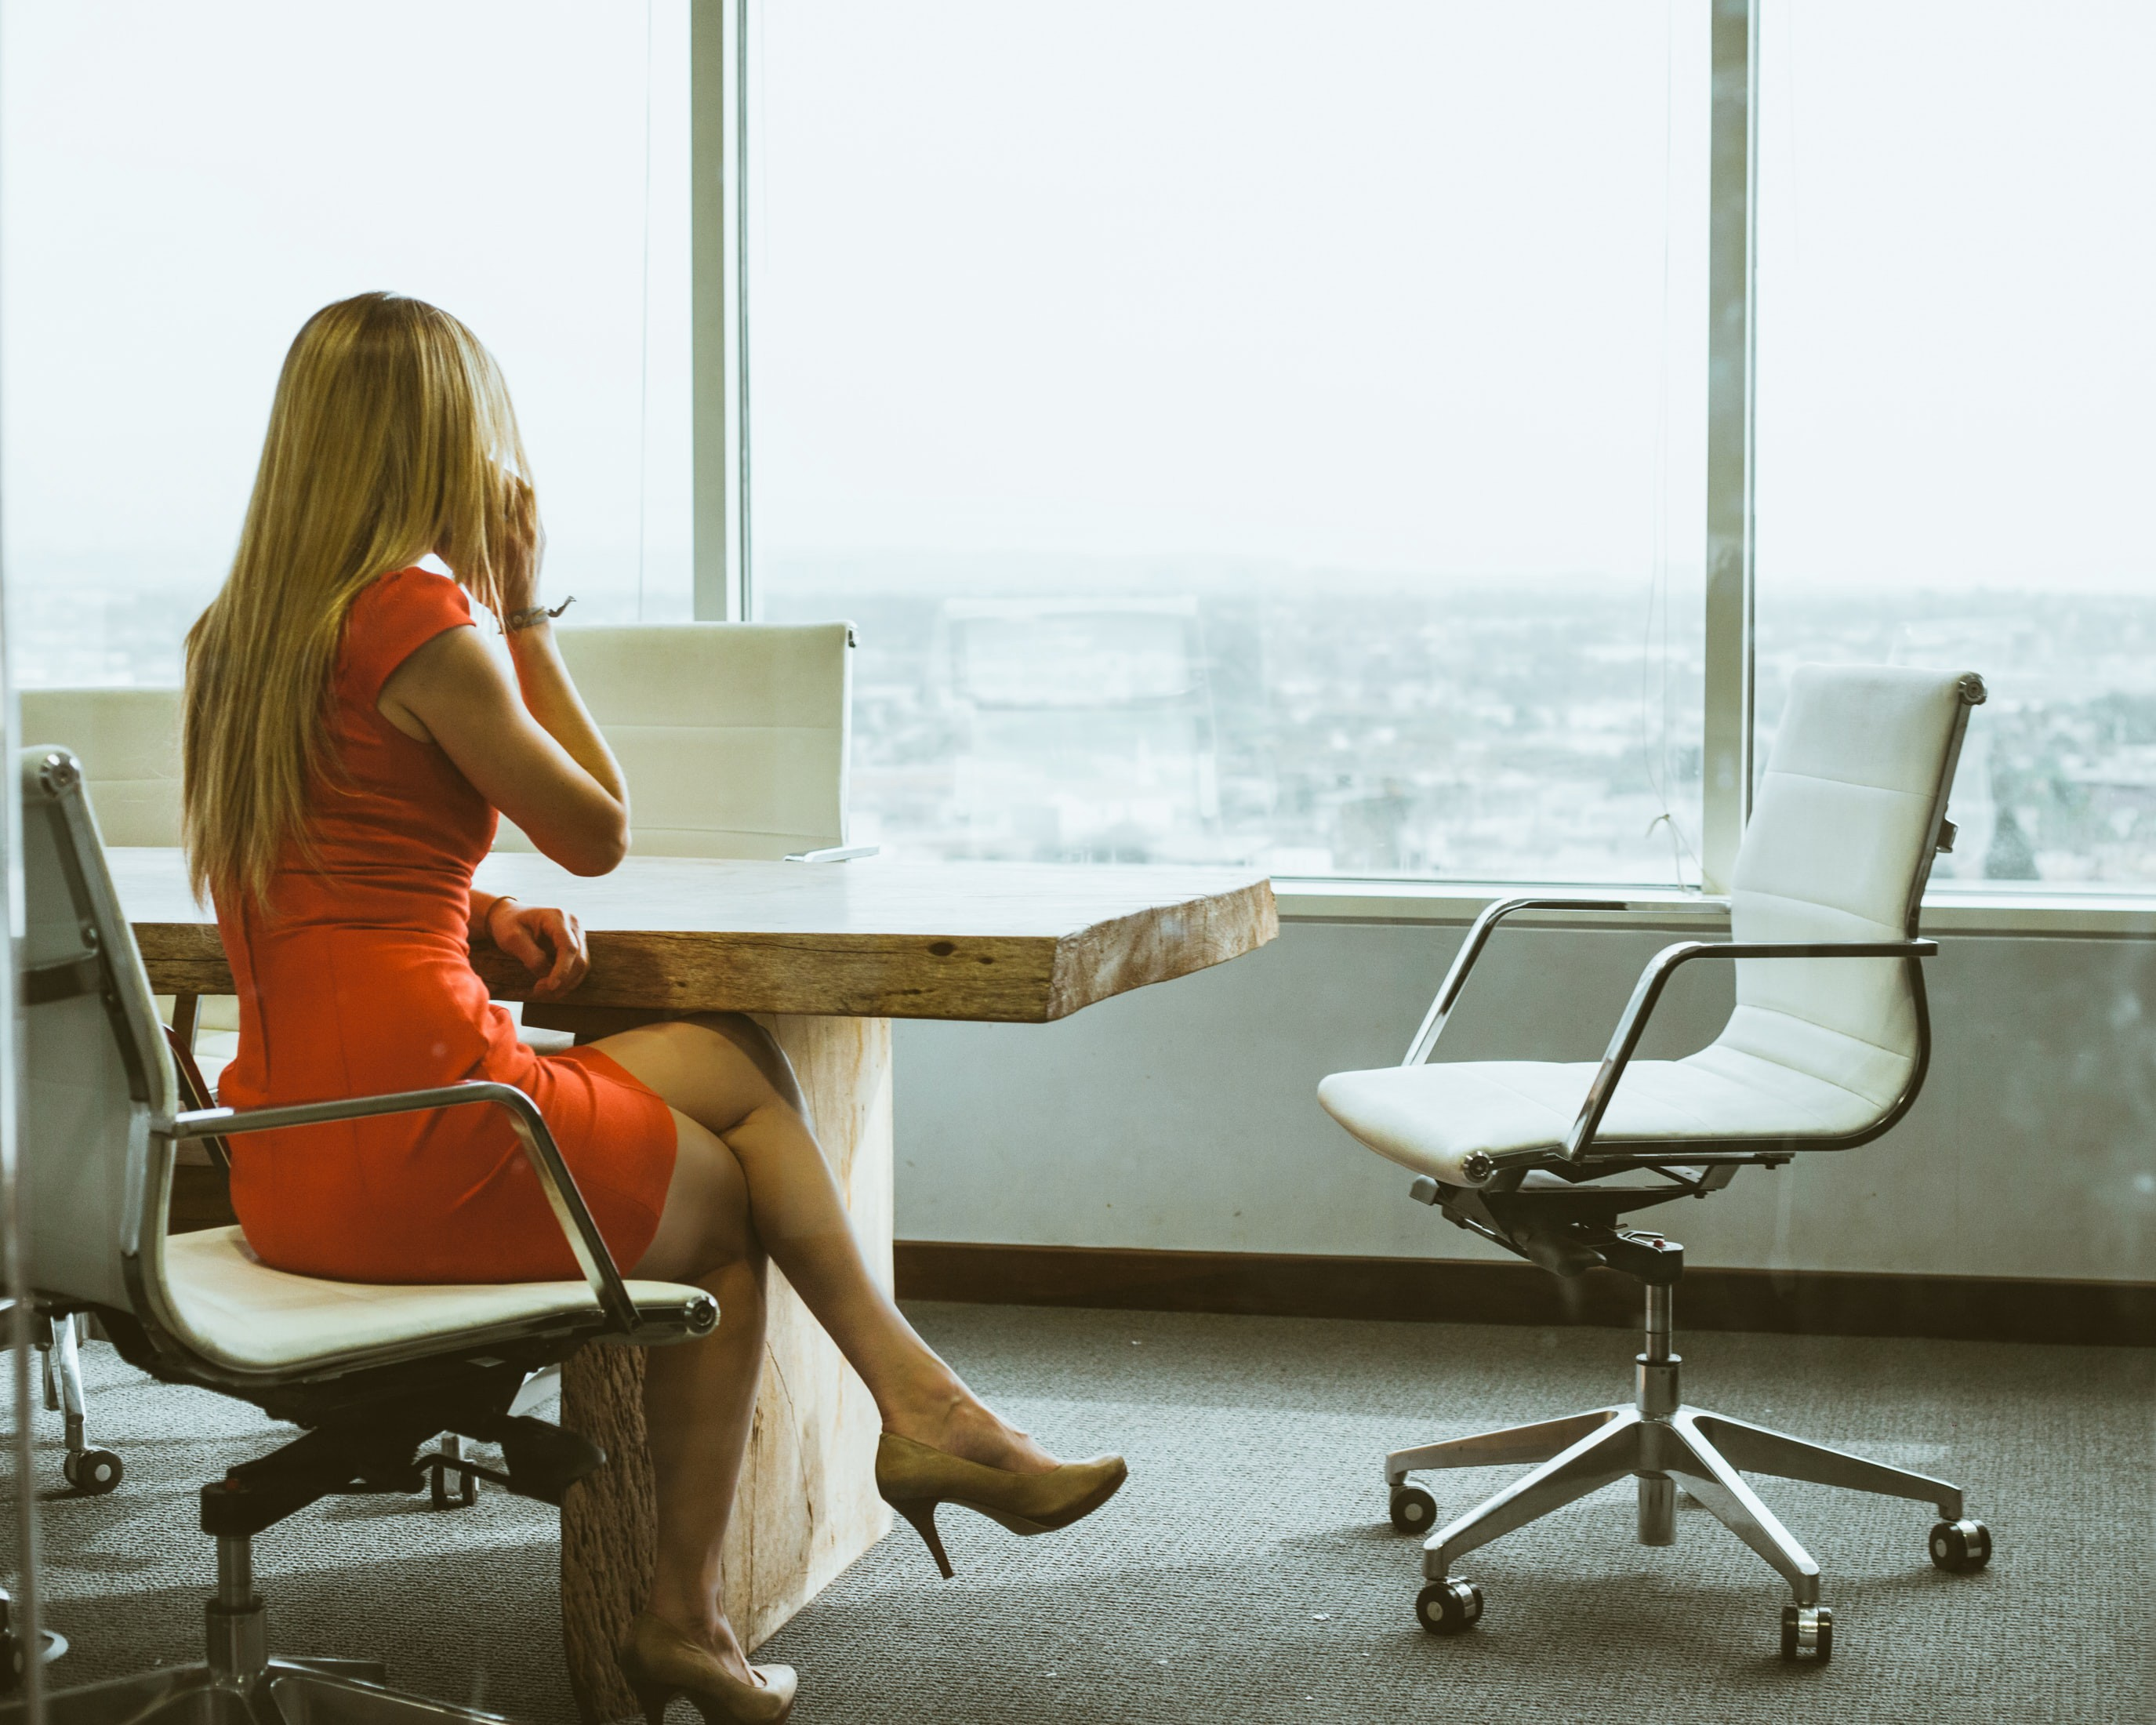 Business woman sitting in a conference room making a phone call